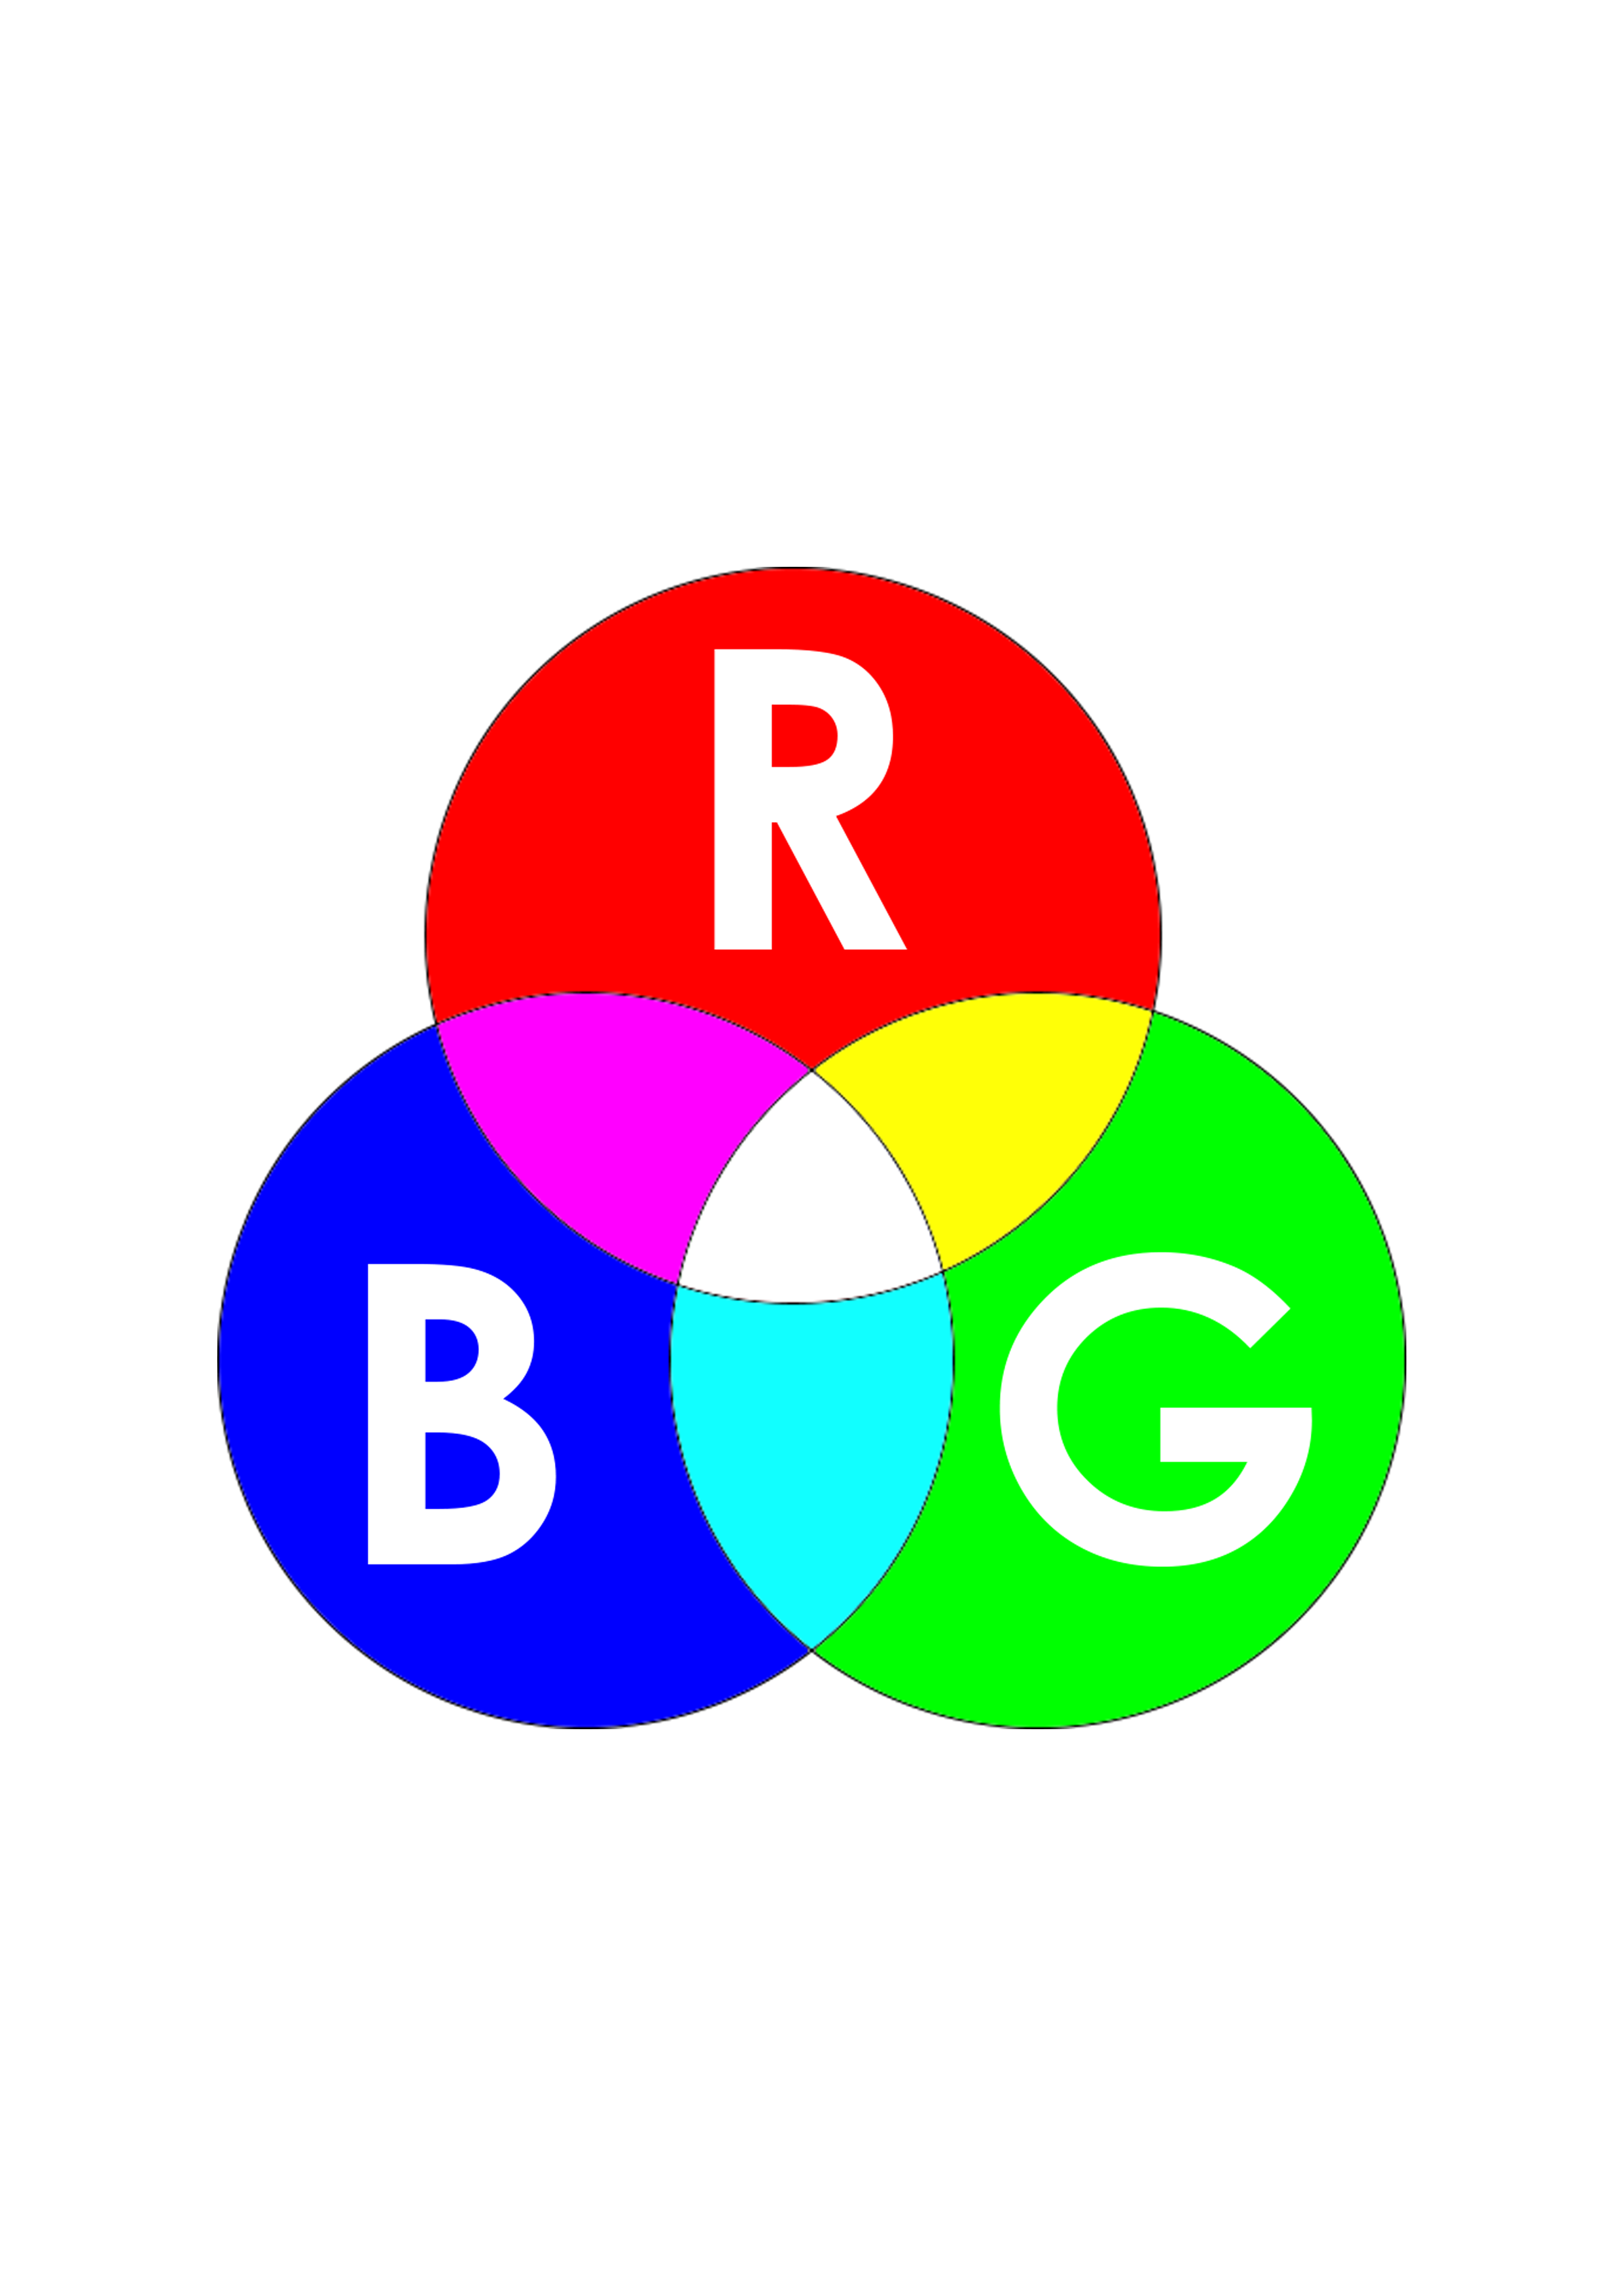 RGB creative design